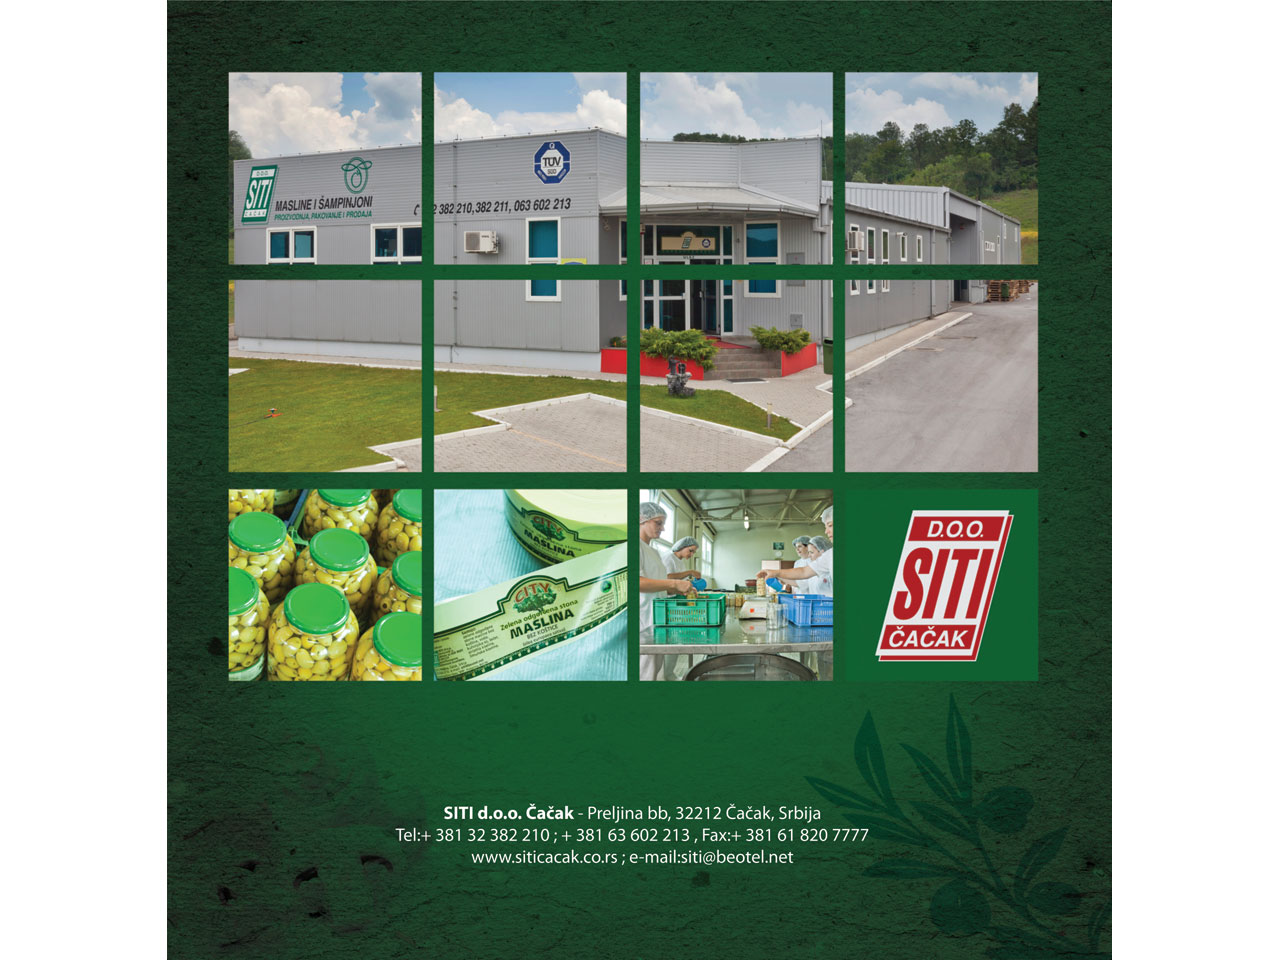 SITI LTD Production fruit and vegetables Cacak - Photo 1